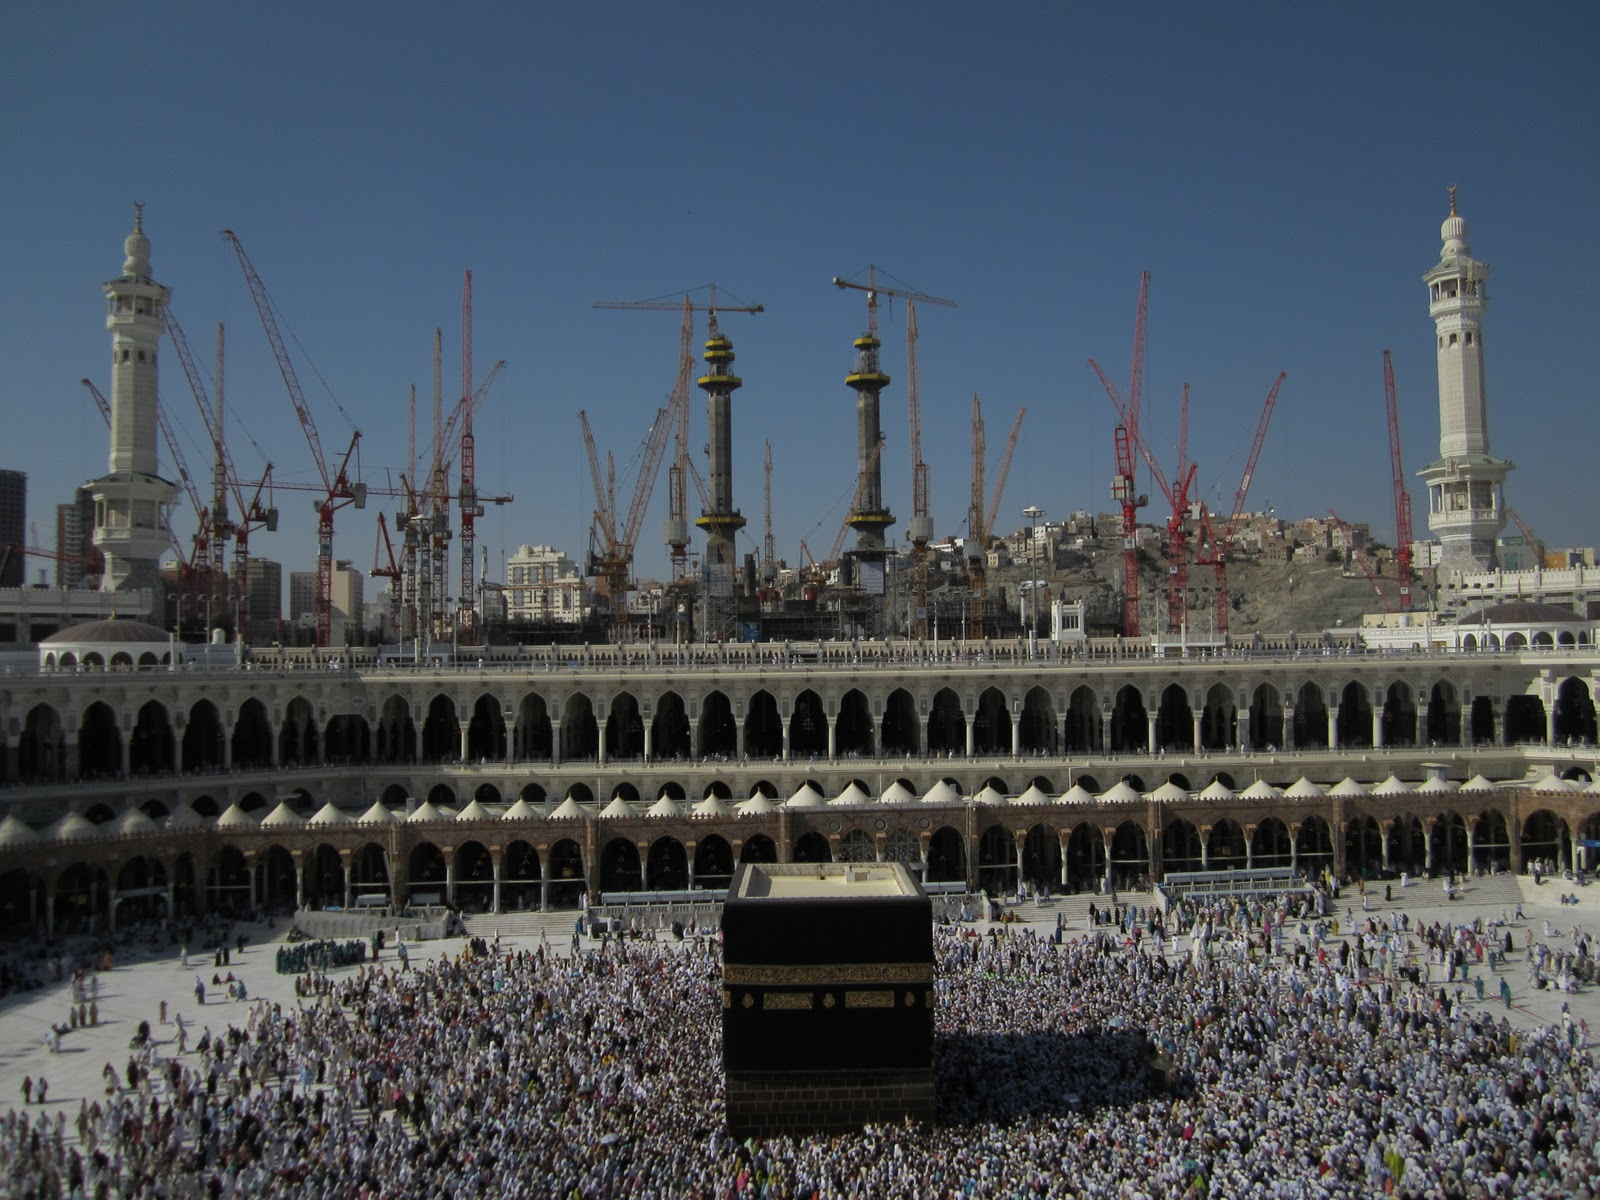 Pictures of Al Masjid Al Haram December 2011